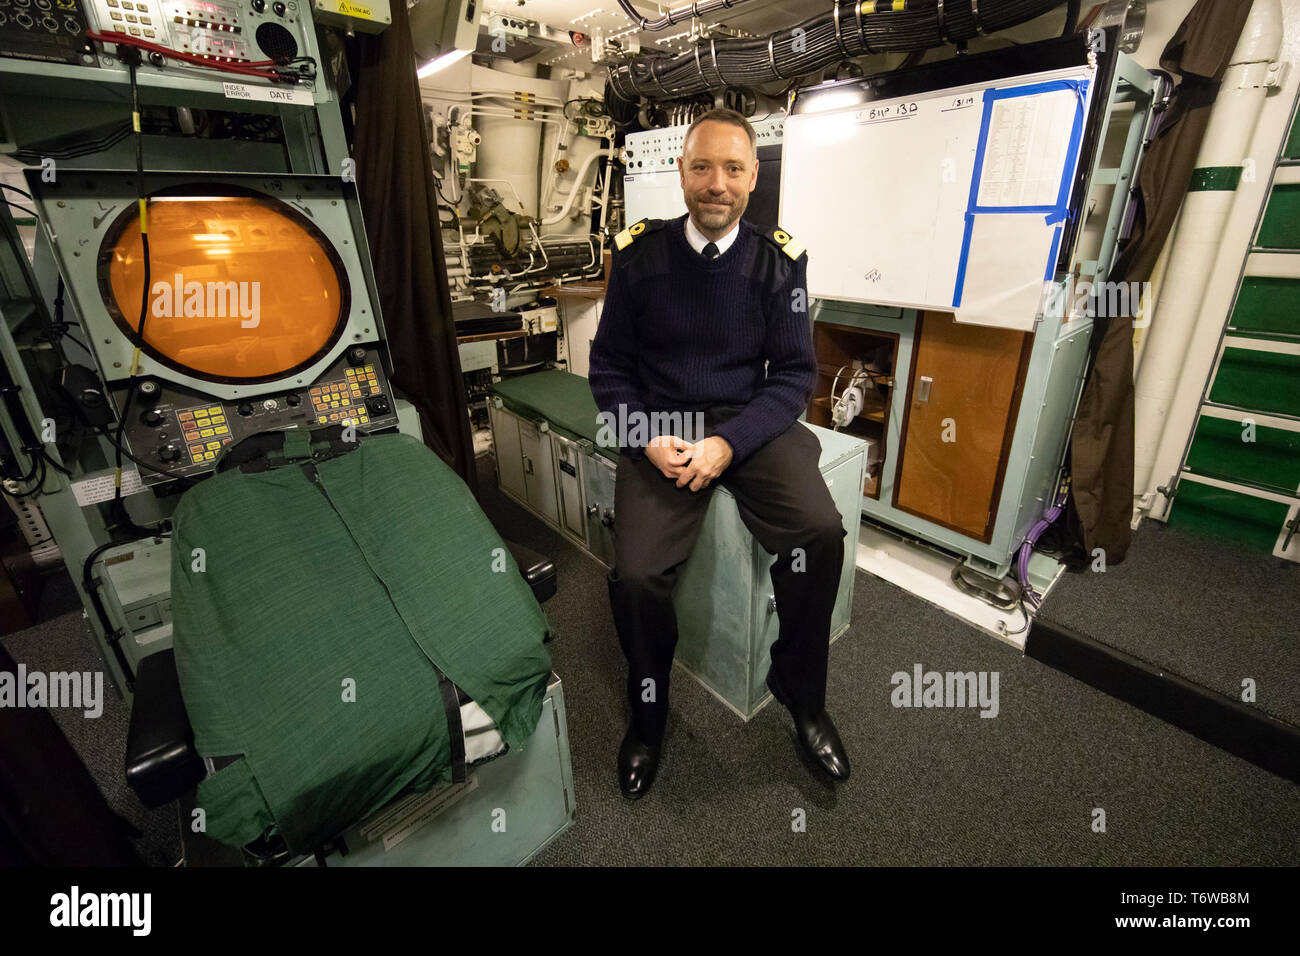 Embargoed to 0001 Friday May 3 Commodore Bob Anstey, on board HMS Vigilant at HM Naval Base Clyde, Faslane, the Vanguard-class submarine carries the UK's Trident nuclear deterrent. - Stock Image